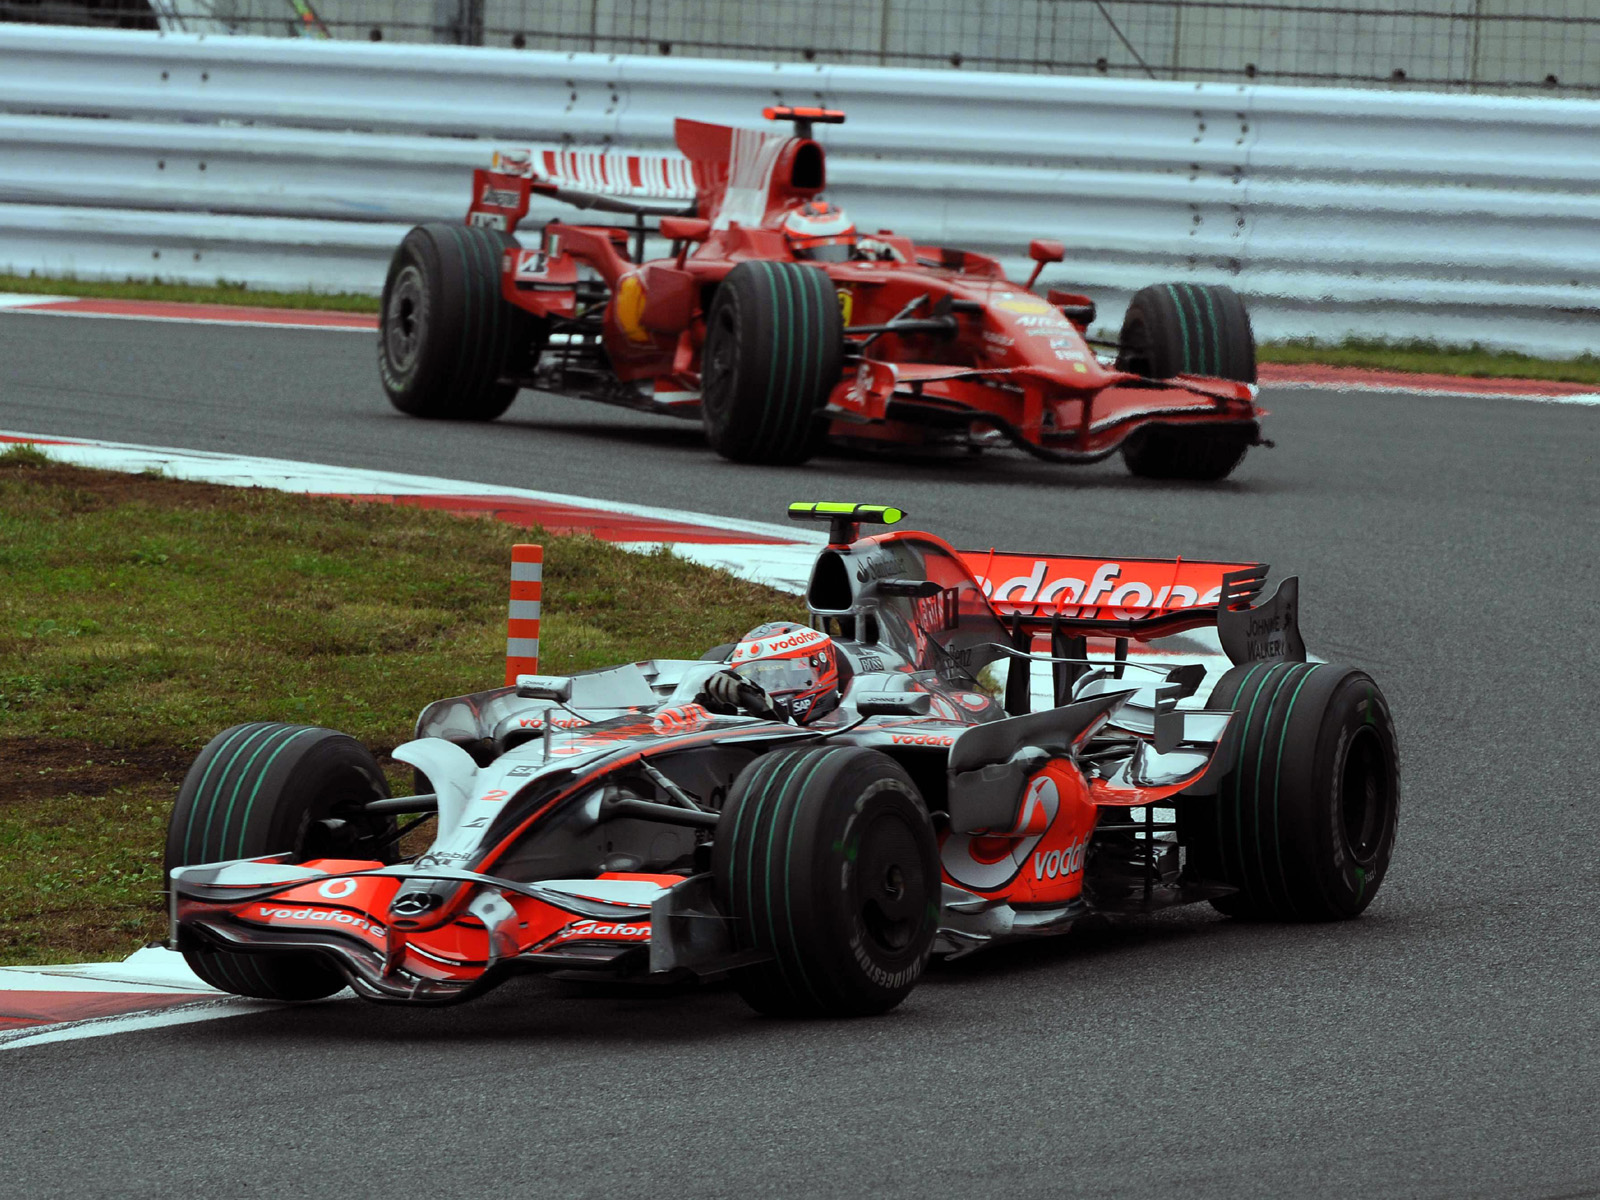 http://1.bp.blogspot.com/_RAlP3BmEW1Q/TQYQR4wIVwI/AAAAAAAACbA/lRWe4IY1Lm4/s1600/The-best-top-desktop-formula-1-wallpapers-20.jpg